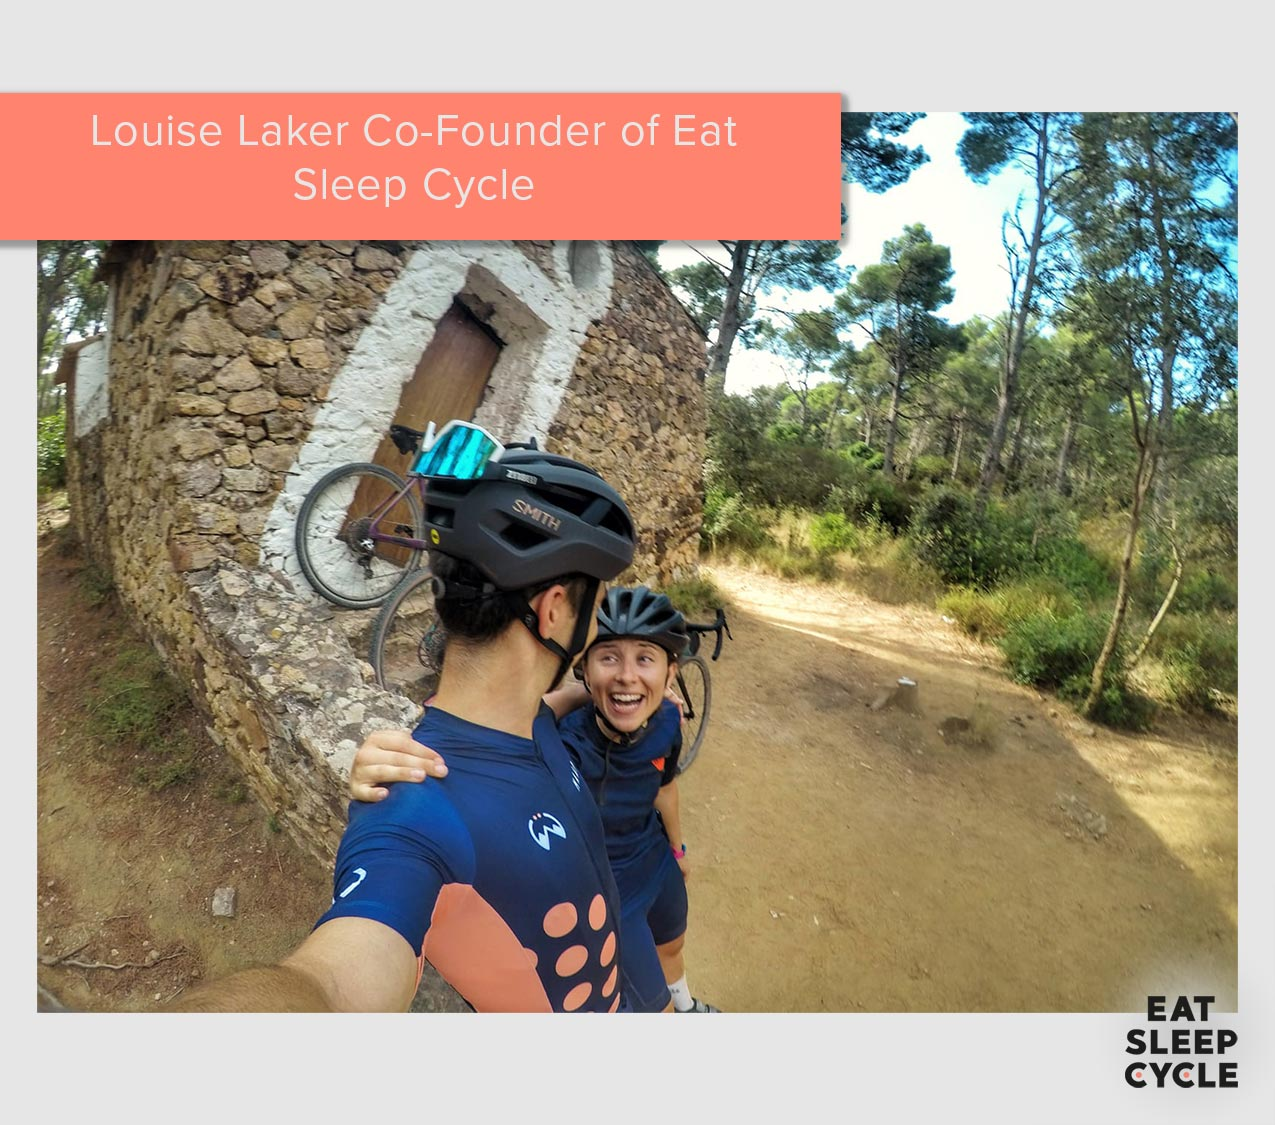 Cafe-Crowdfunding-Campaign-Eat-Sleep-Cycle-Girona-Cycling-Cafe-Louise-Laker